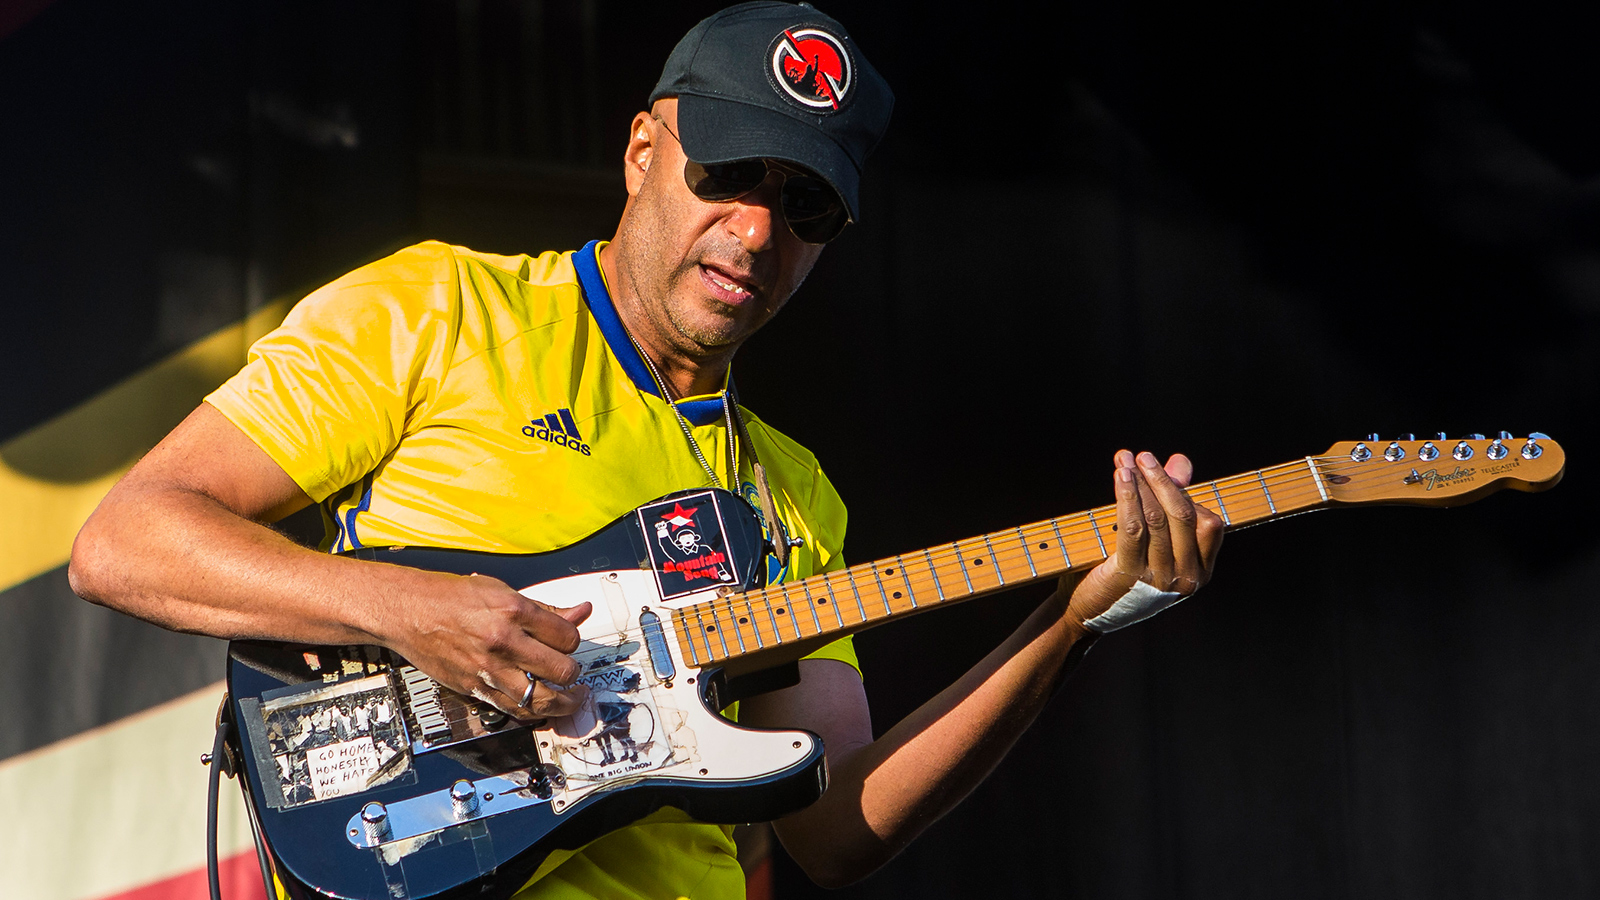 Tom Morello Responds to Backlash Over Phone-Throwing Incident